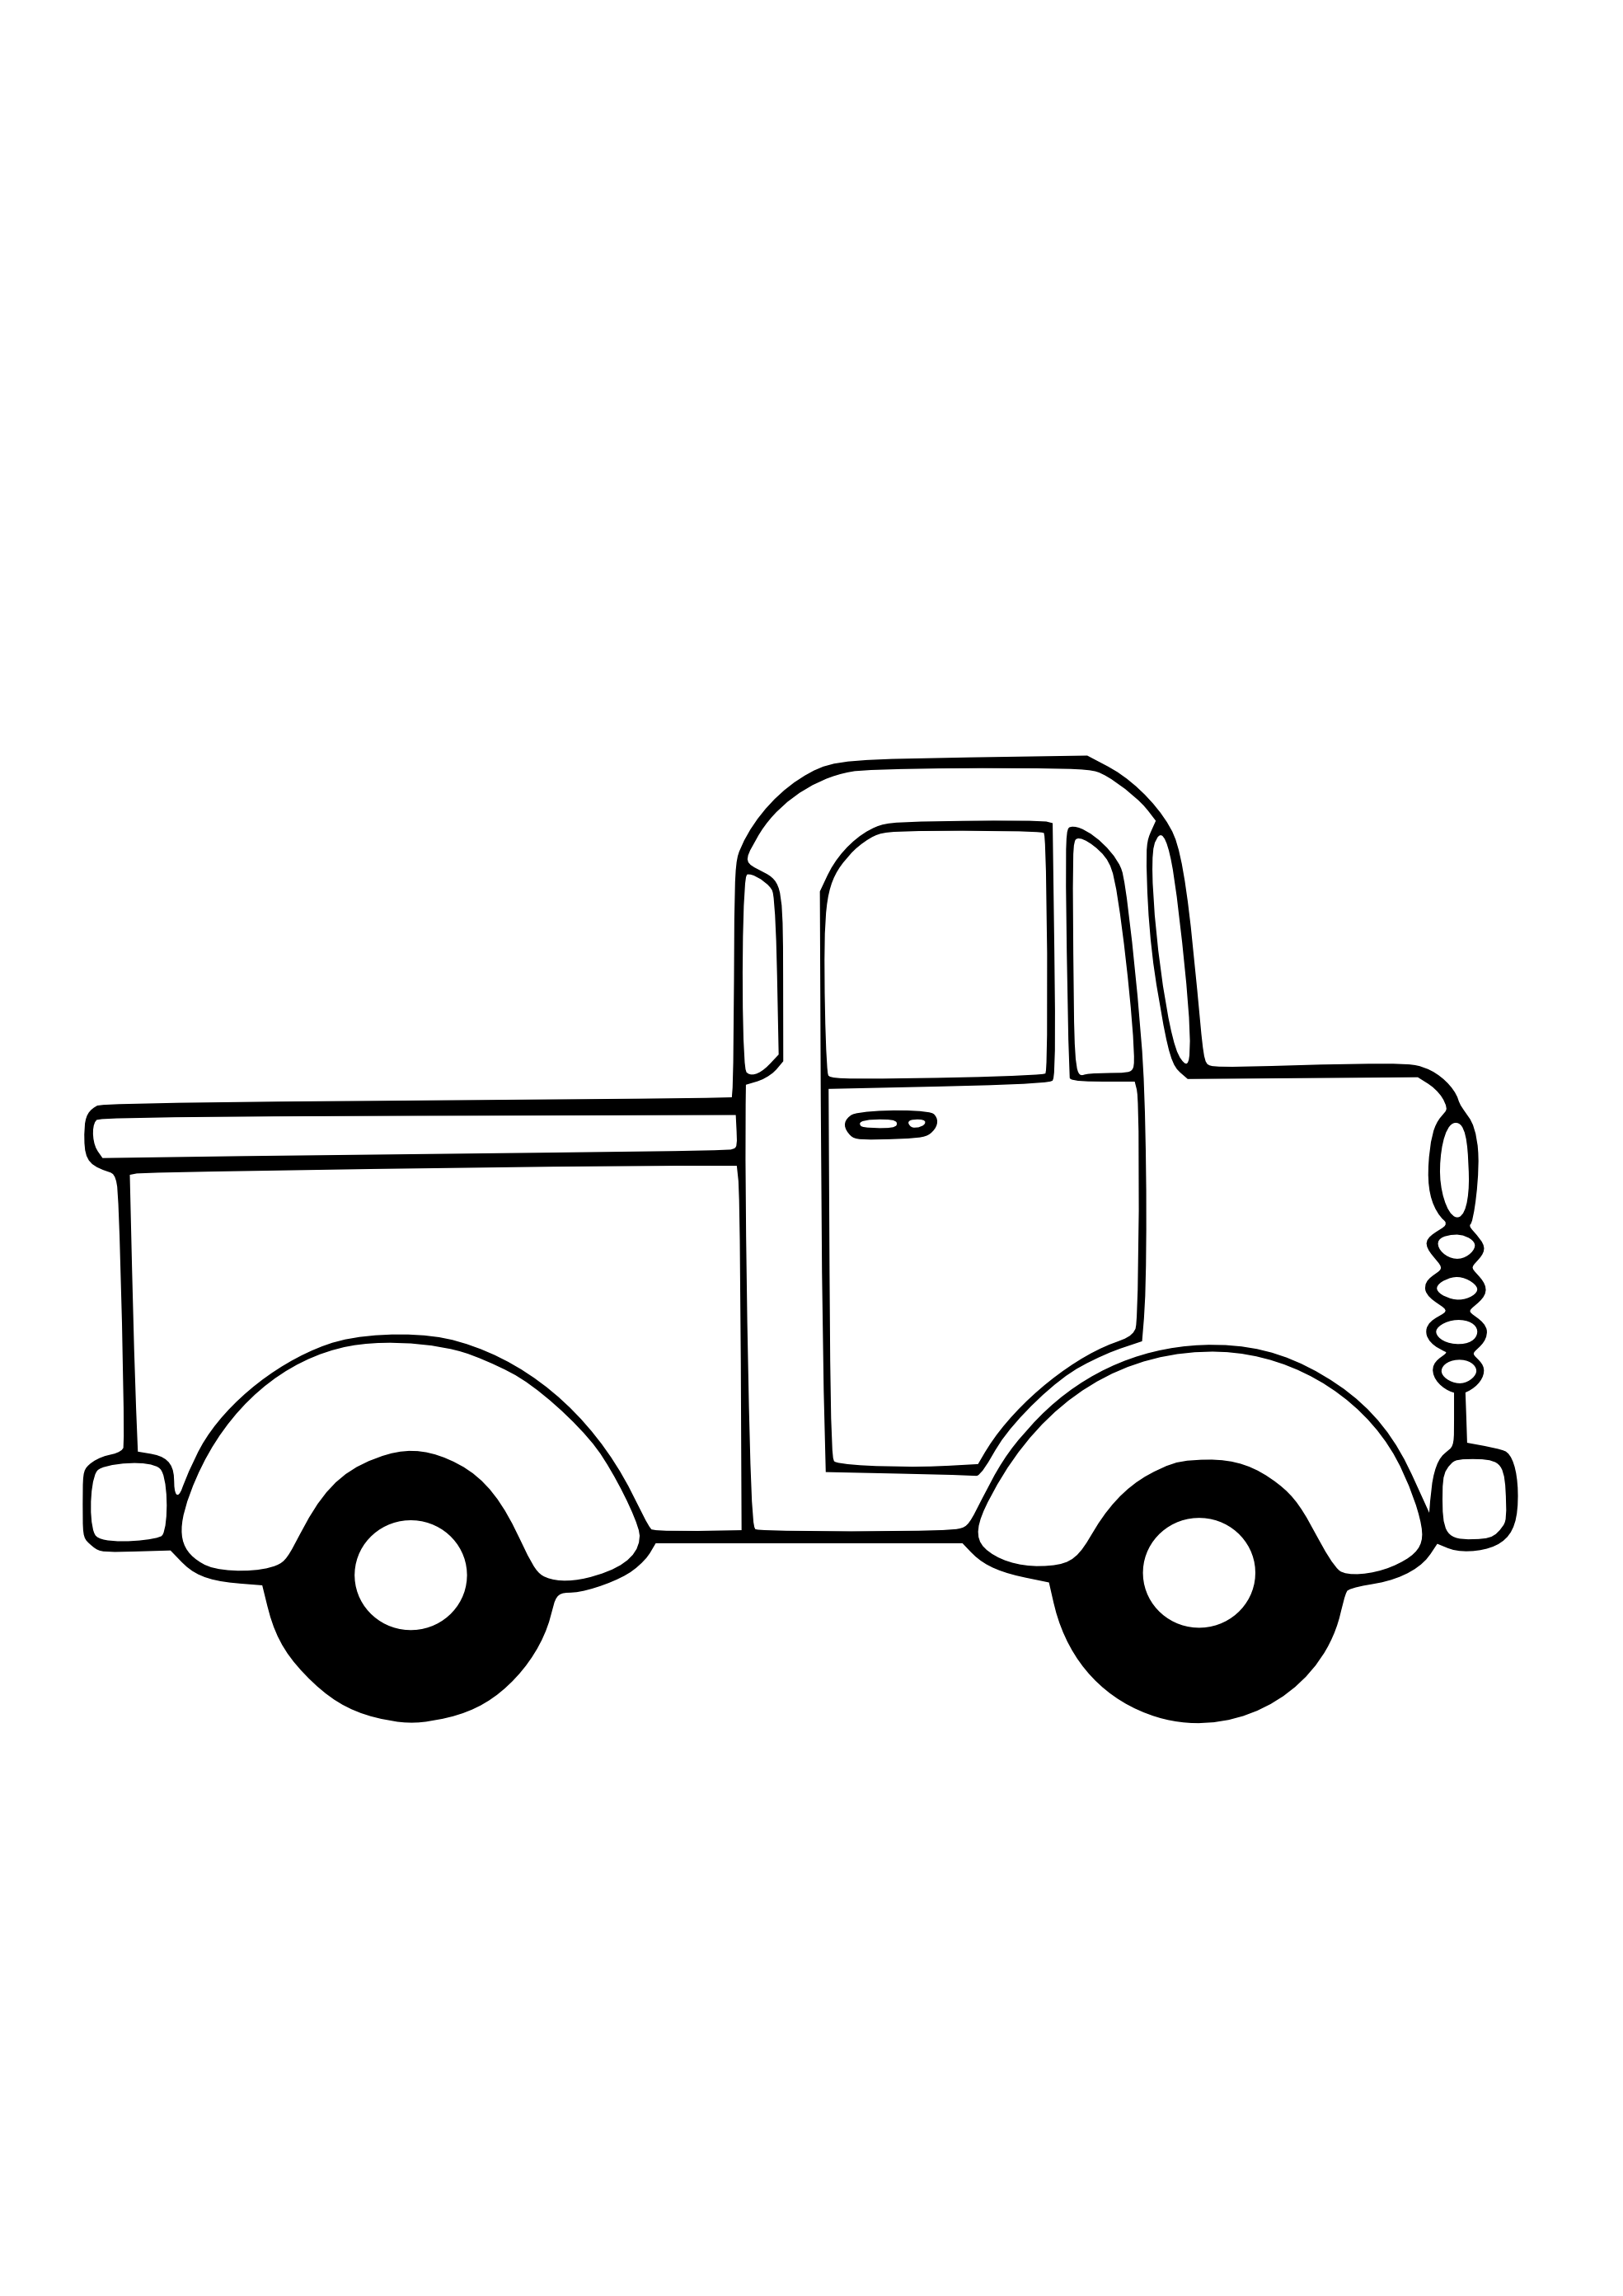 Truck with christmas tree clipart black and white image transparent library Free Christmas Truck Cliparts, Download Free Clip Art, Free ... image transparent library